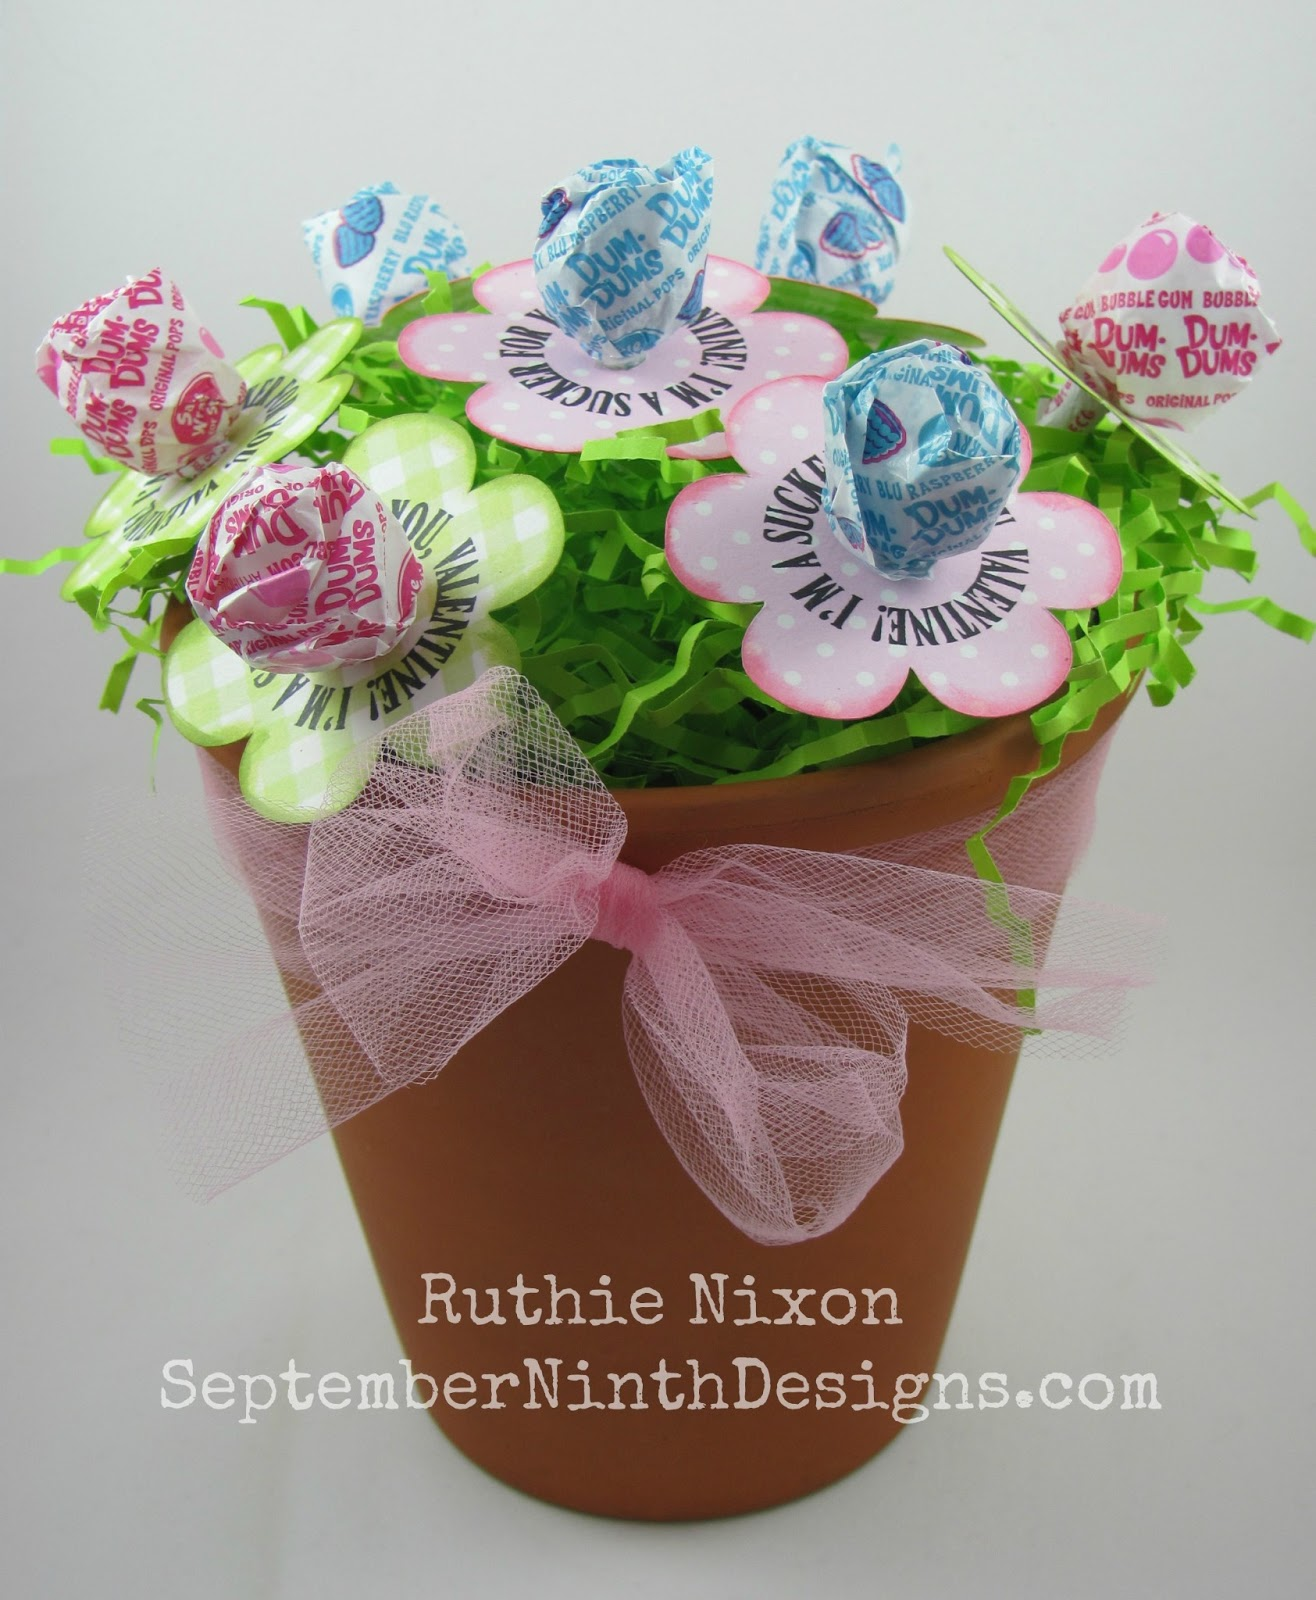 September ninth designs candy flower treats be fun to spend the week sharing some fun valentines treat ideas todays treat is cute inexpensive and a perfect craft that kids can help make izmirmasajfo